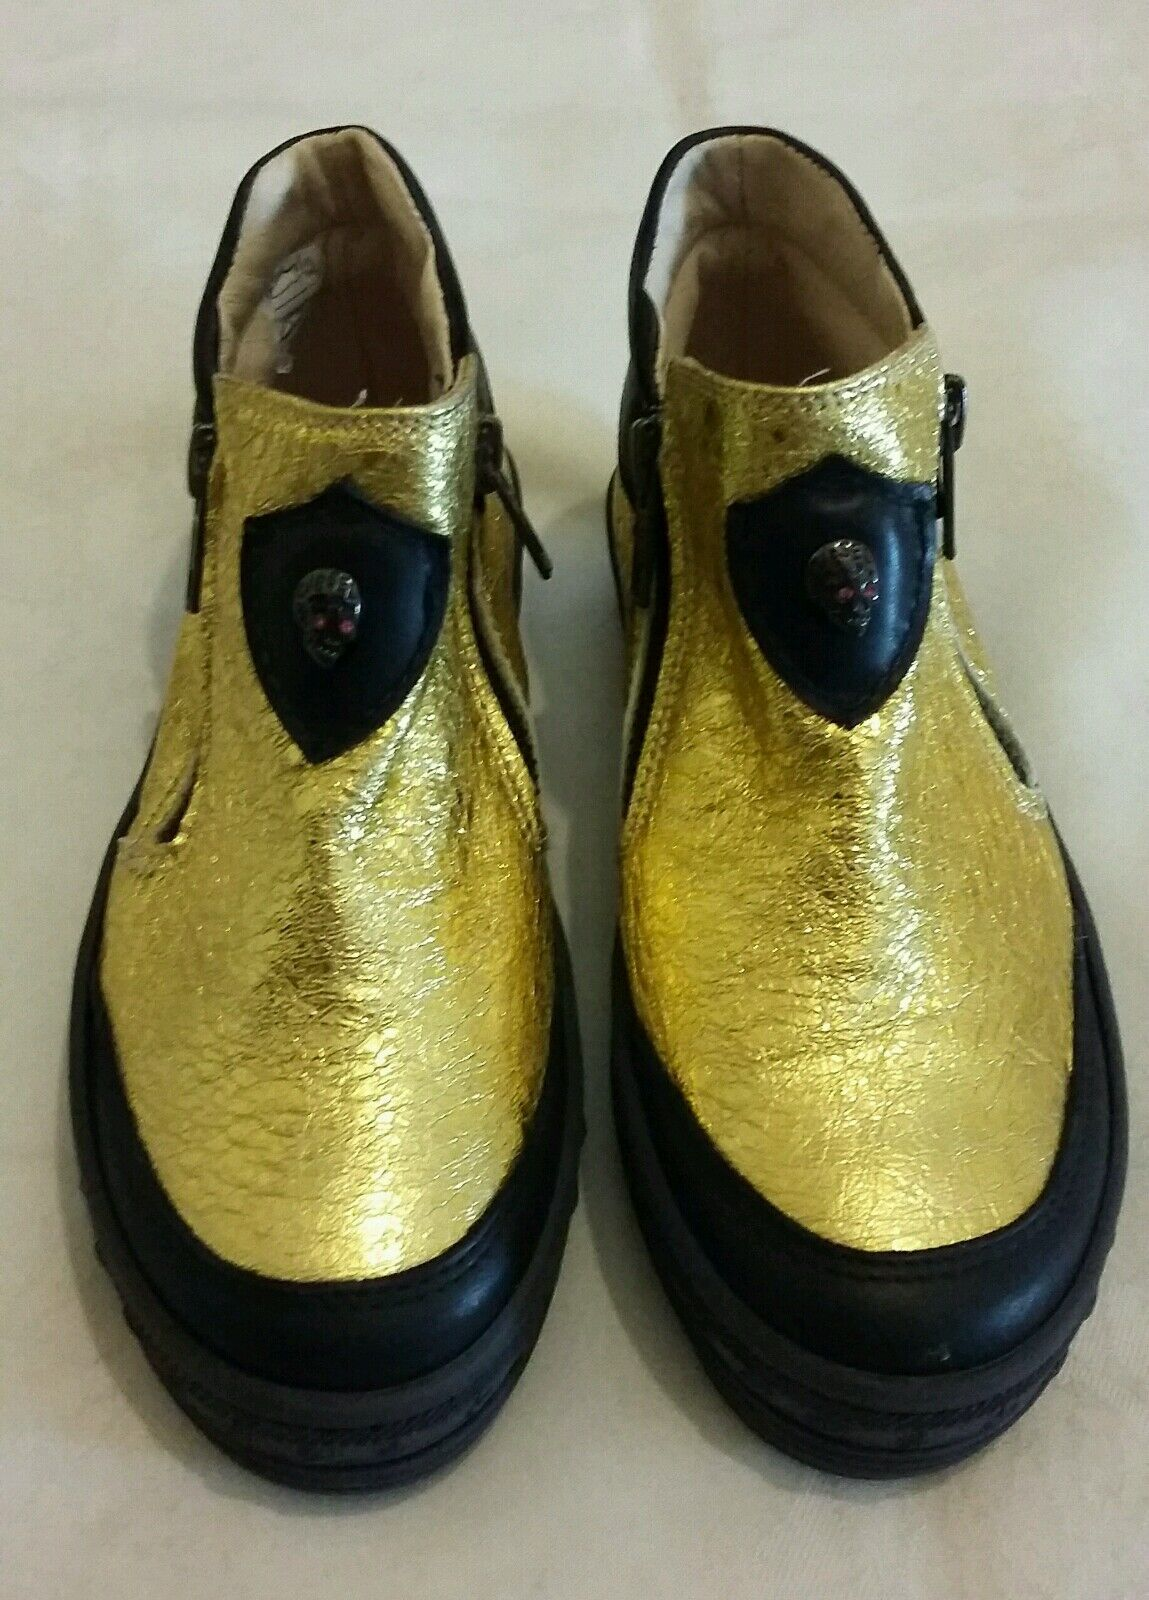 DIESEL Metallic gold Leather Kids shoes Boots Size uk 12.5 eu 31 Made in italy